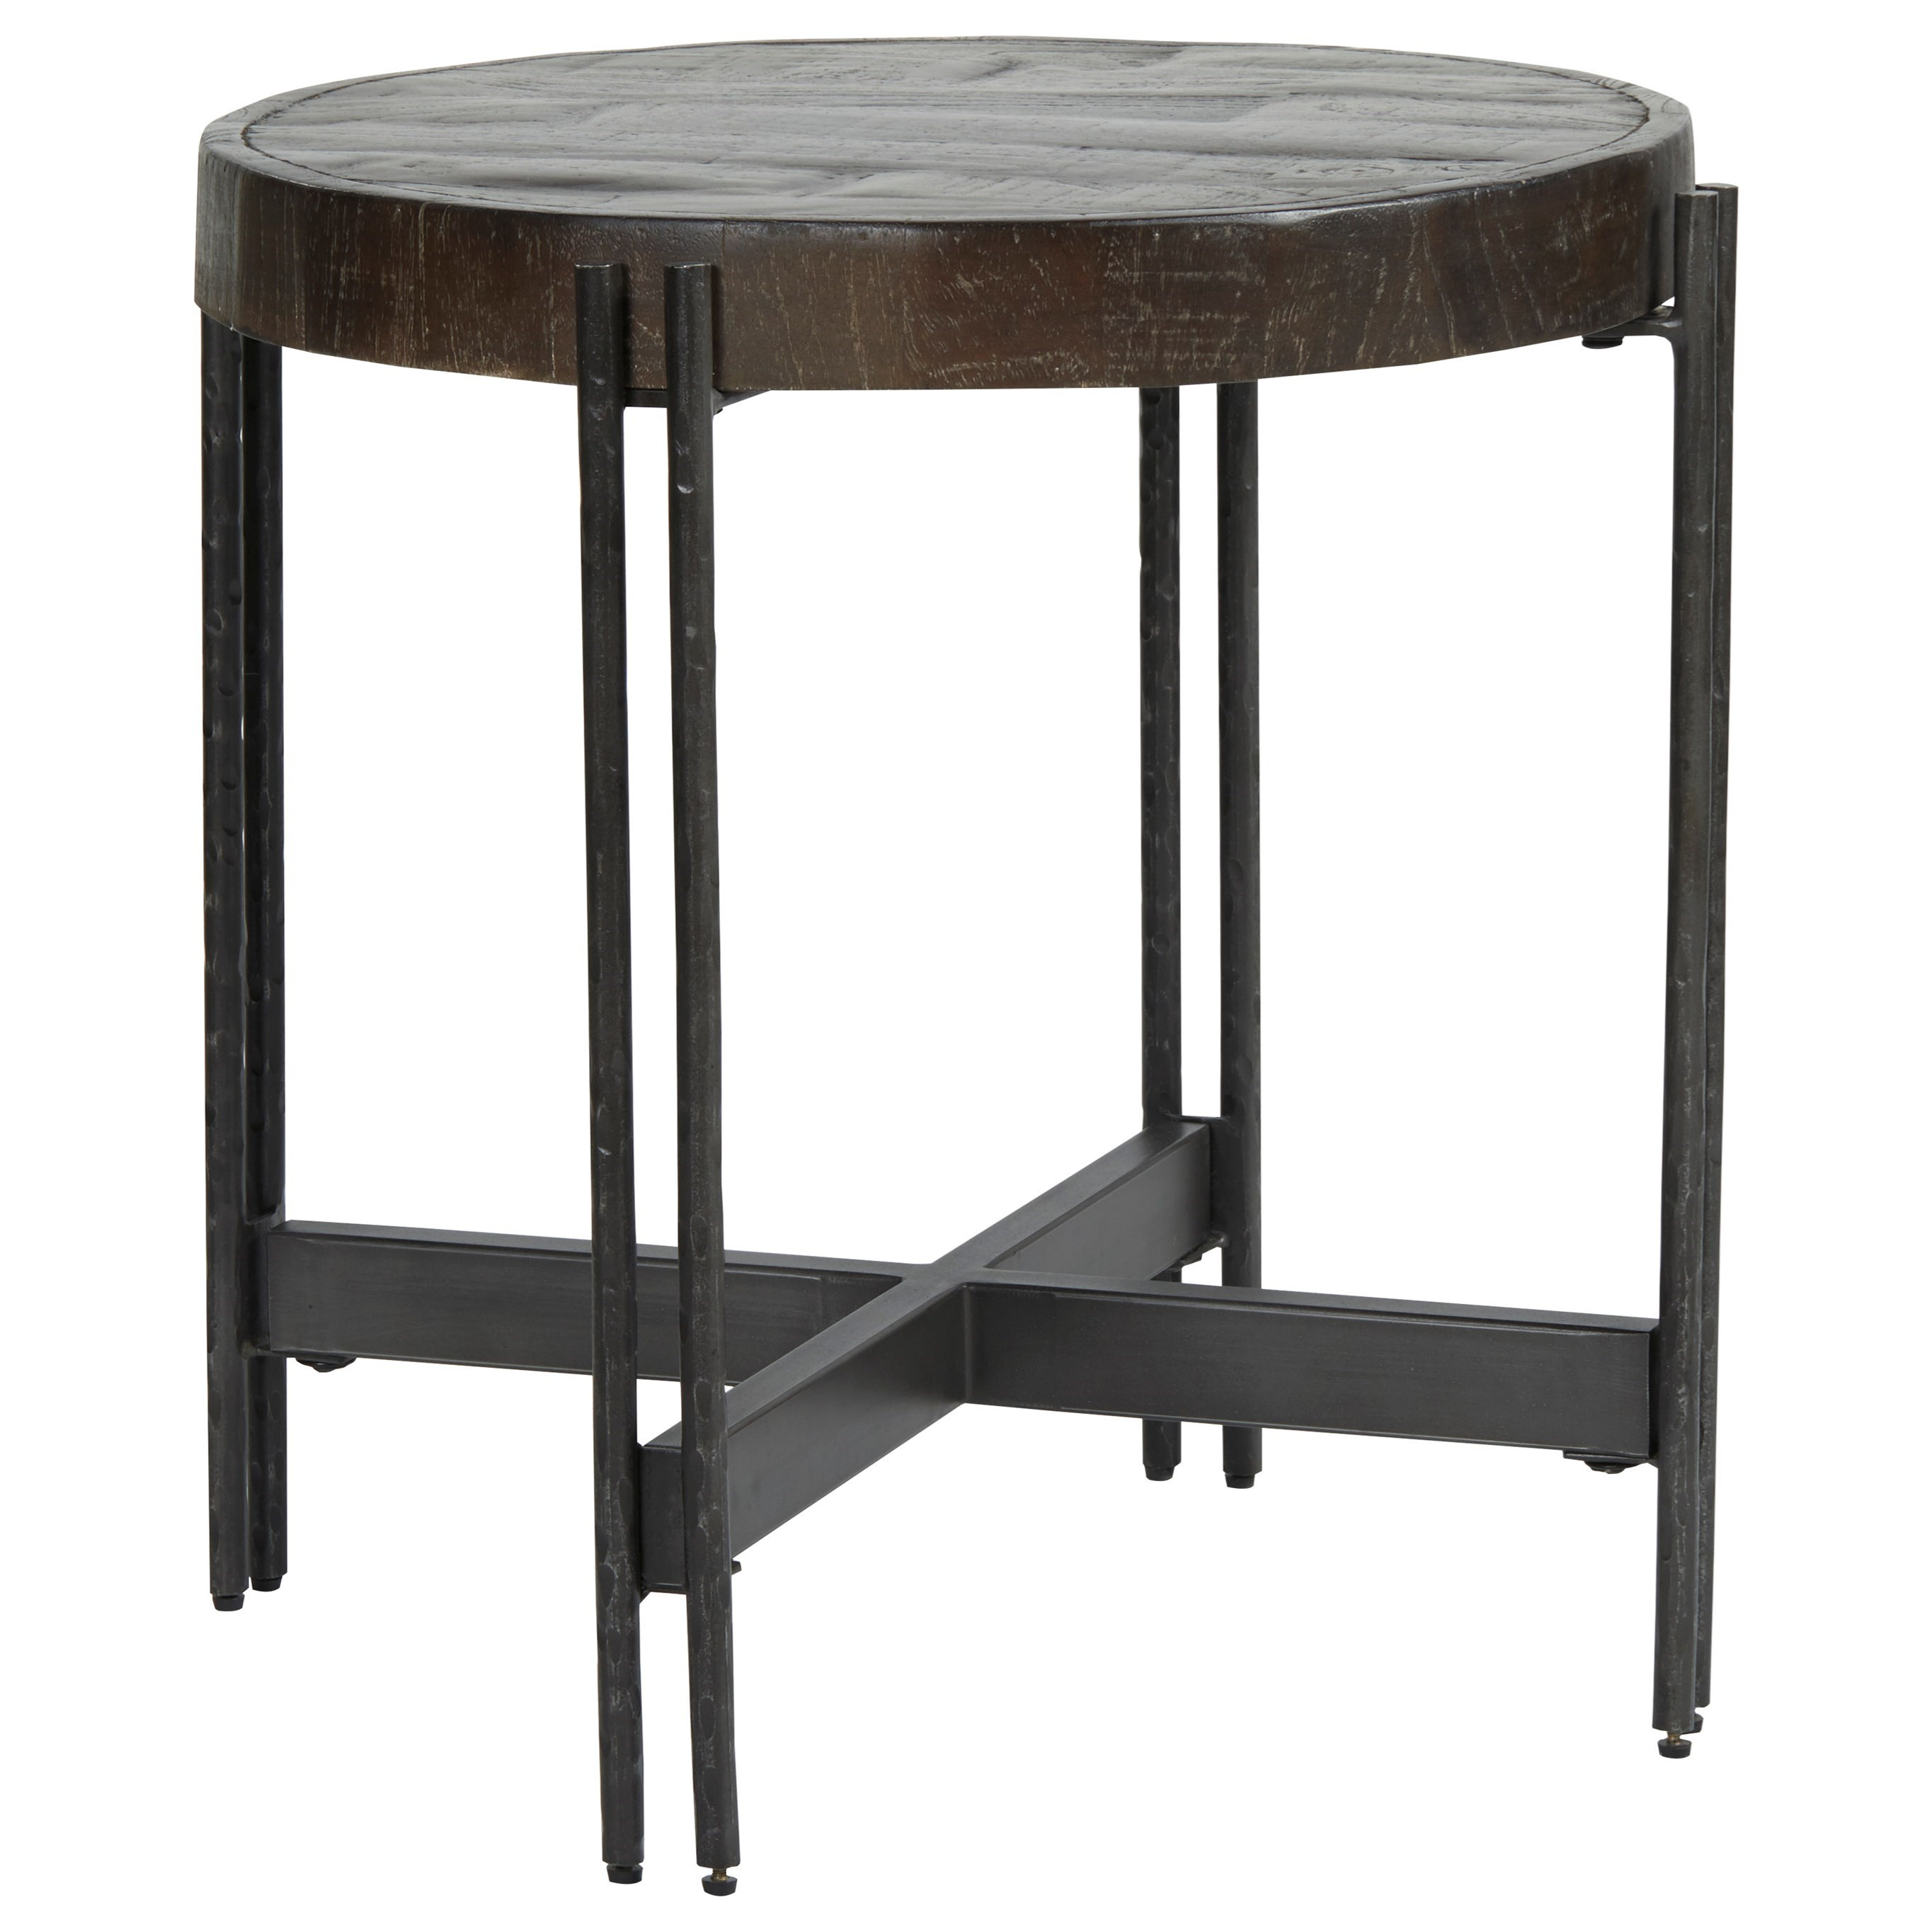 Jillenhurst Round End Table by Signature Design by Ashley at Beck's Furniture